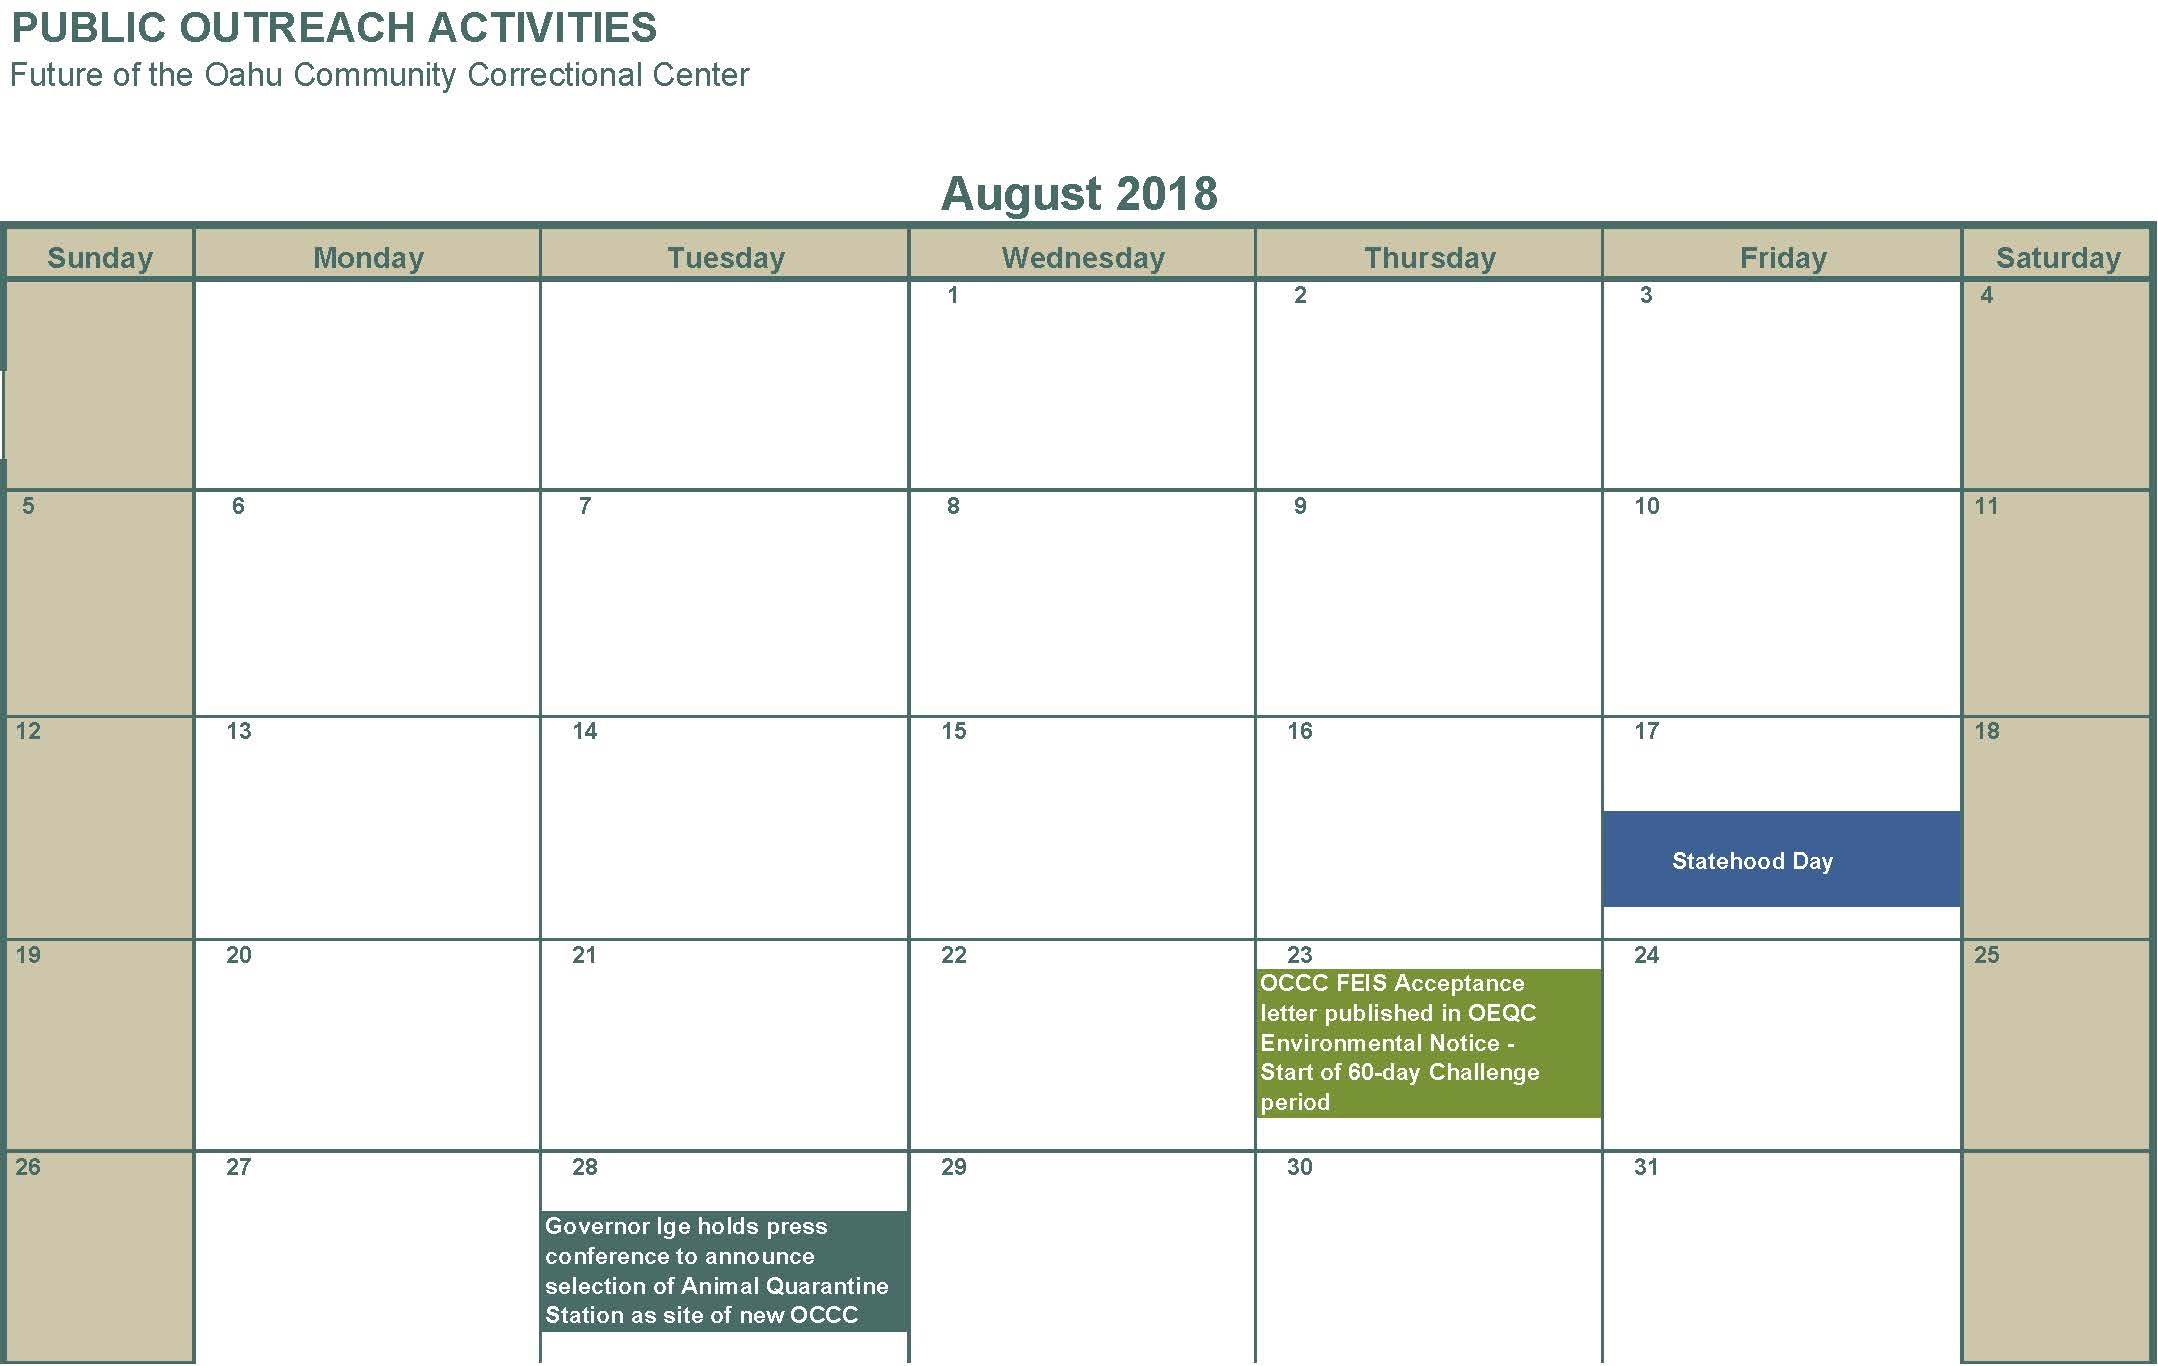 August 2018 OCCC Environmental Notice 60 day Challenge Period starts